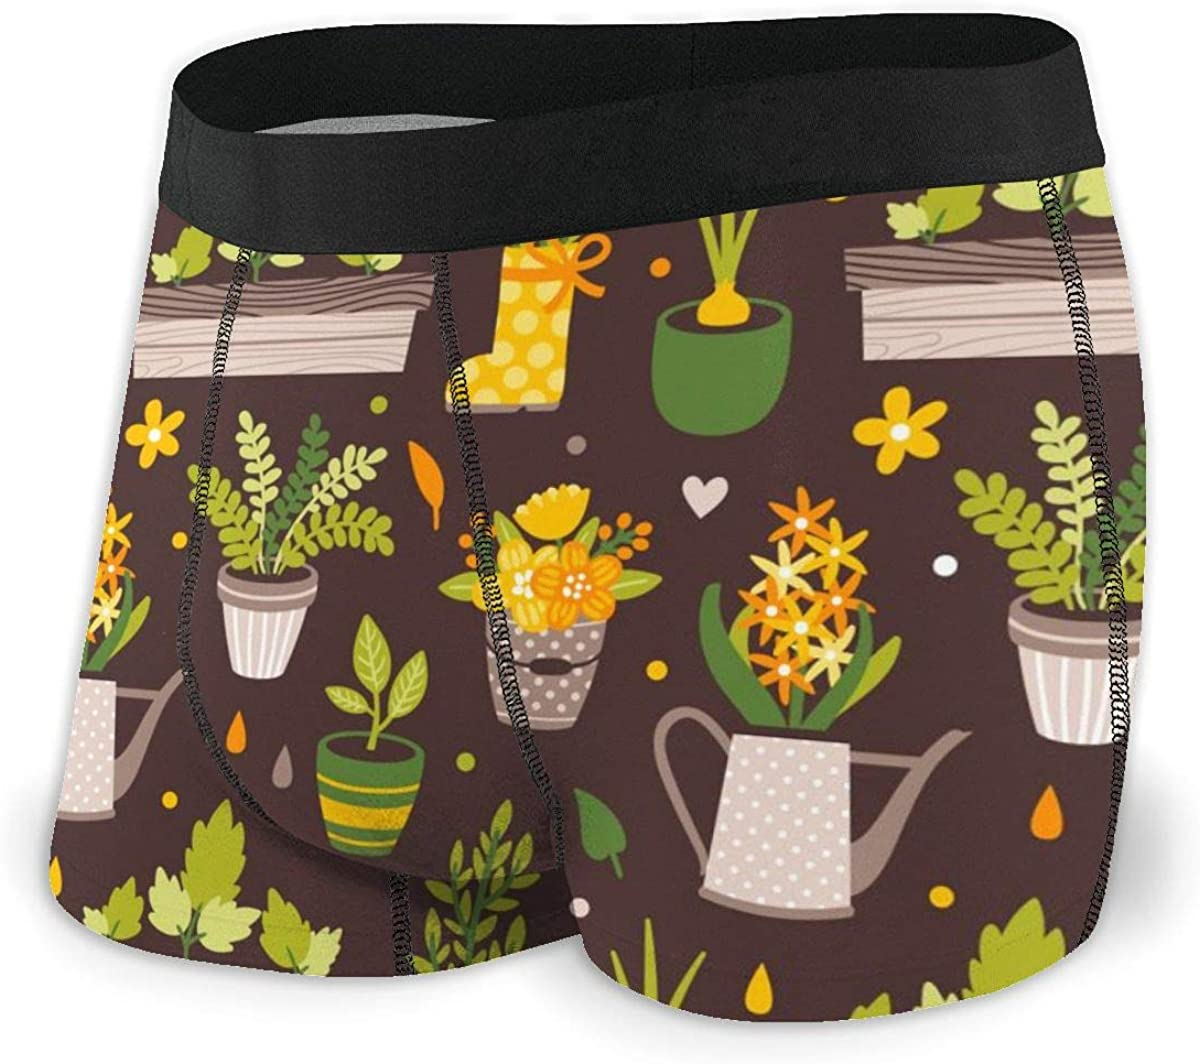 Randolph Wordsworth Mens Underwear Potted Plants and Flowers Boys Boxer Briefs Trunks Low Rise Underpants Man